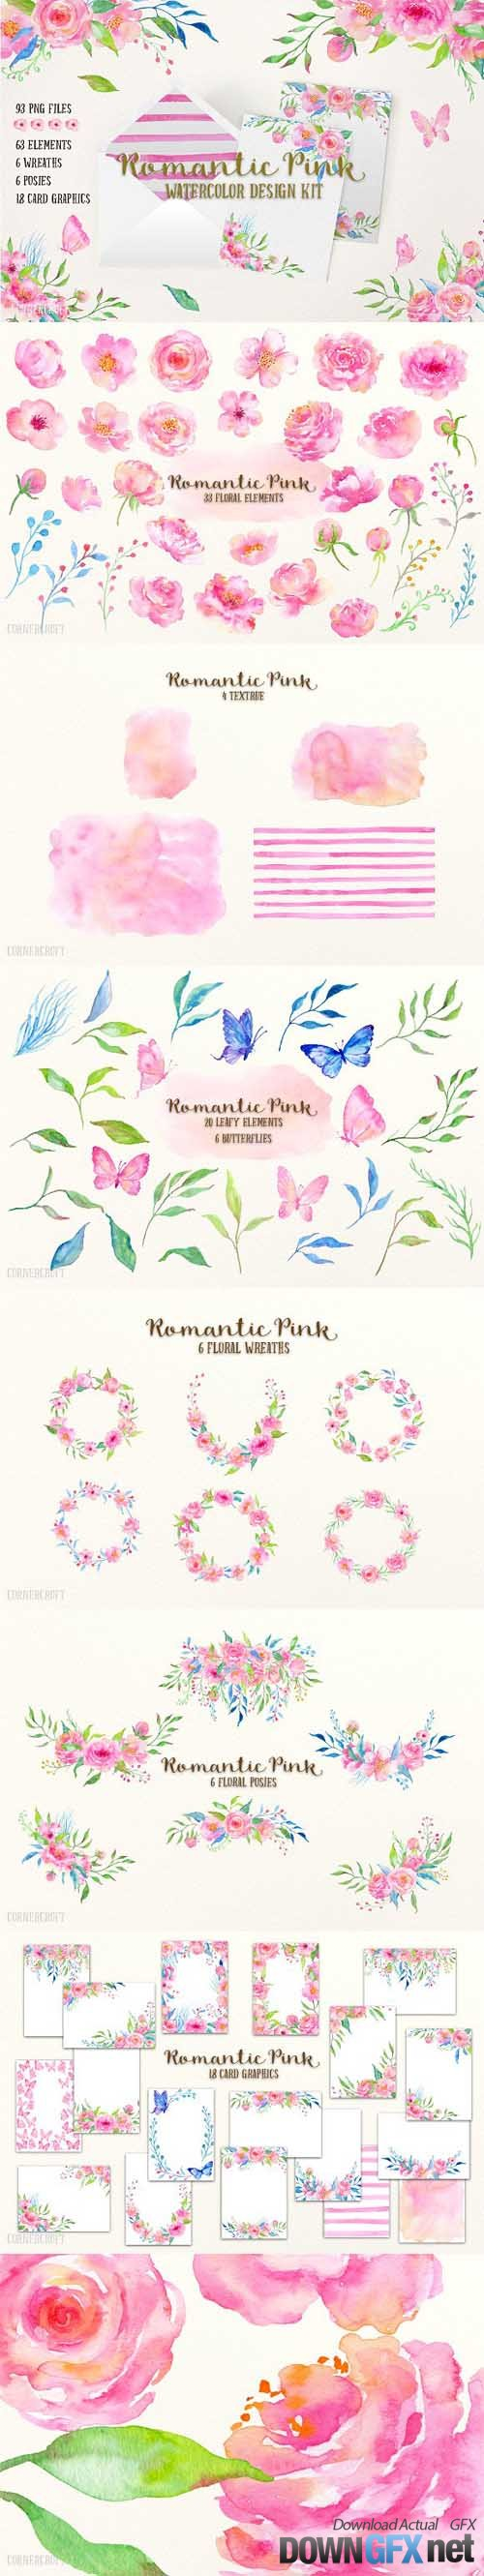 Watercolor Design Kit Romantic Pink 1288893